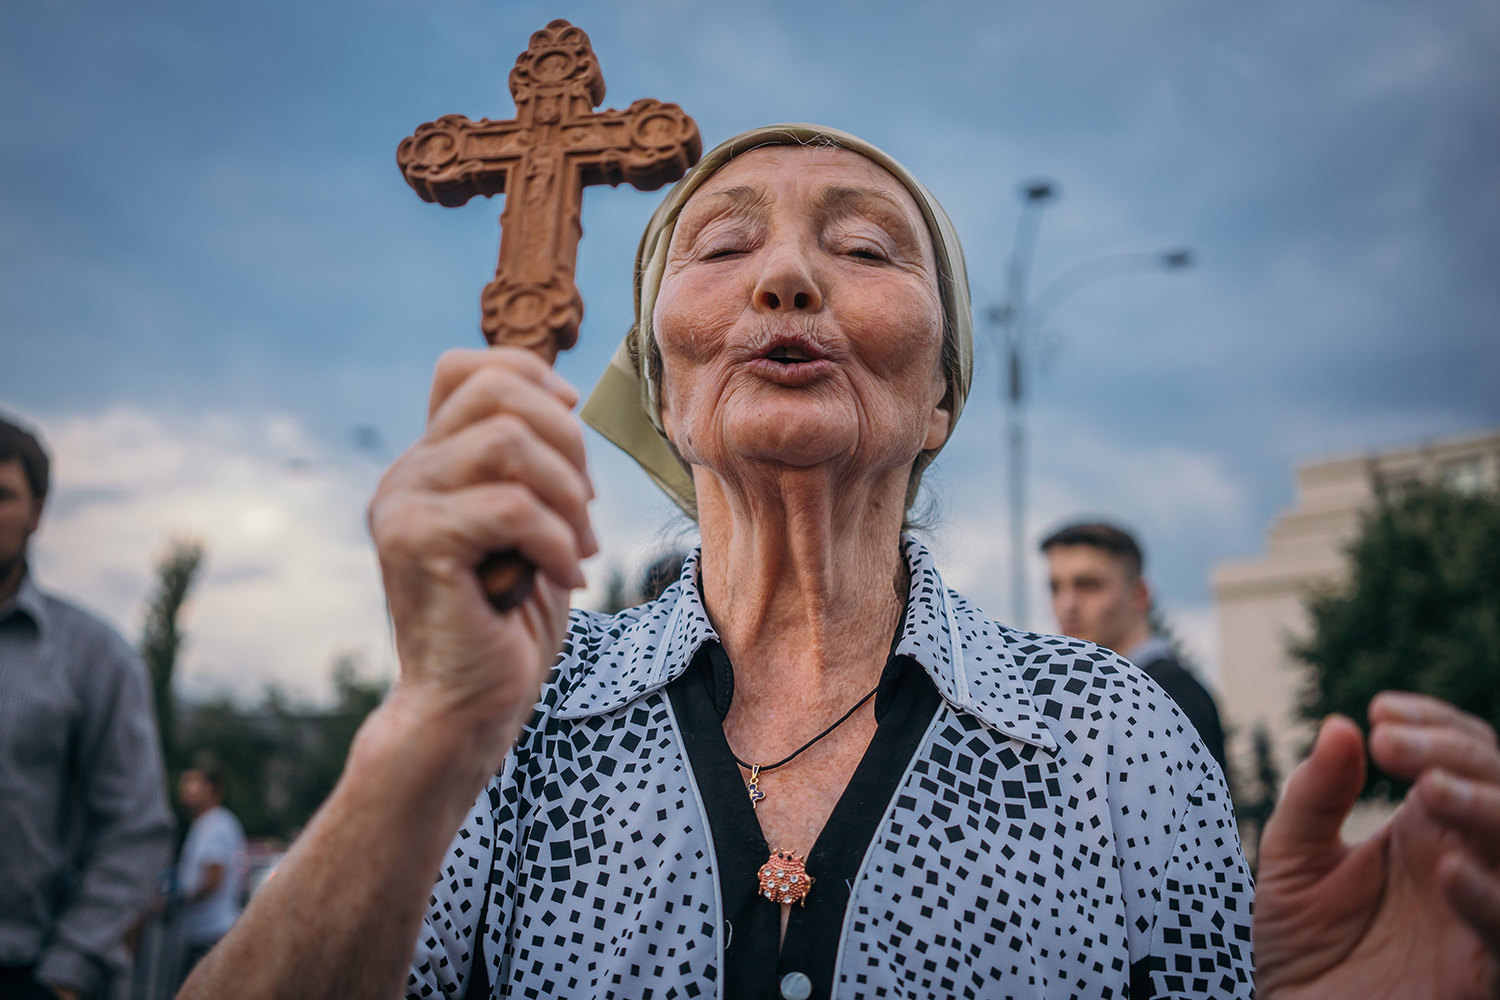 A woman prays during a protest against the Romanian government and its coronavirus measures in Bucharest on July 12. ANDREI PUNGOVSCHI/AFP via Getty Images